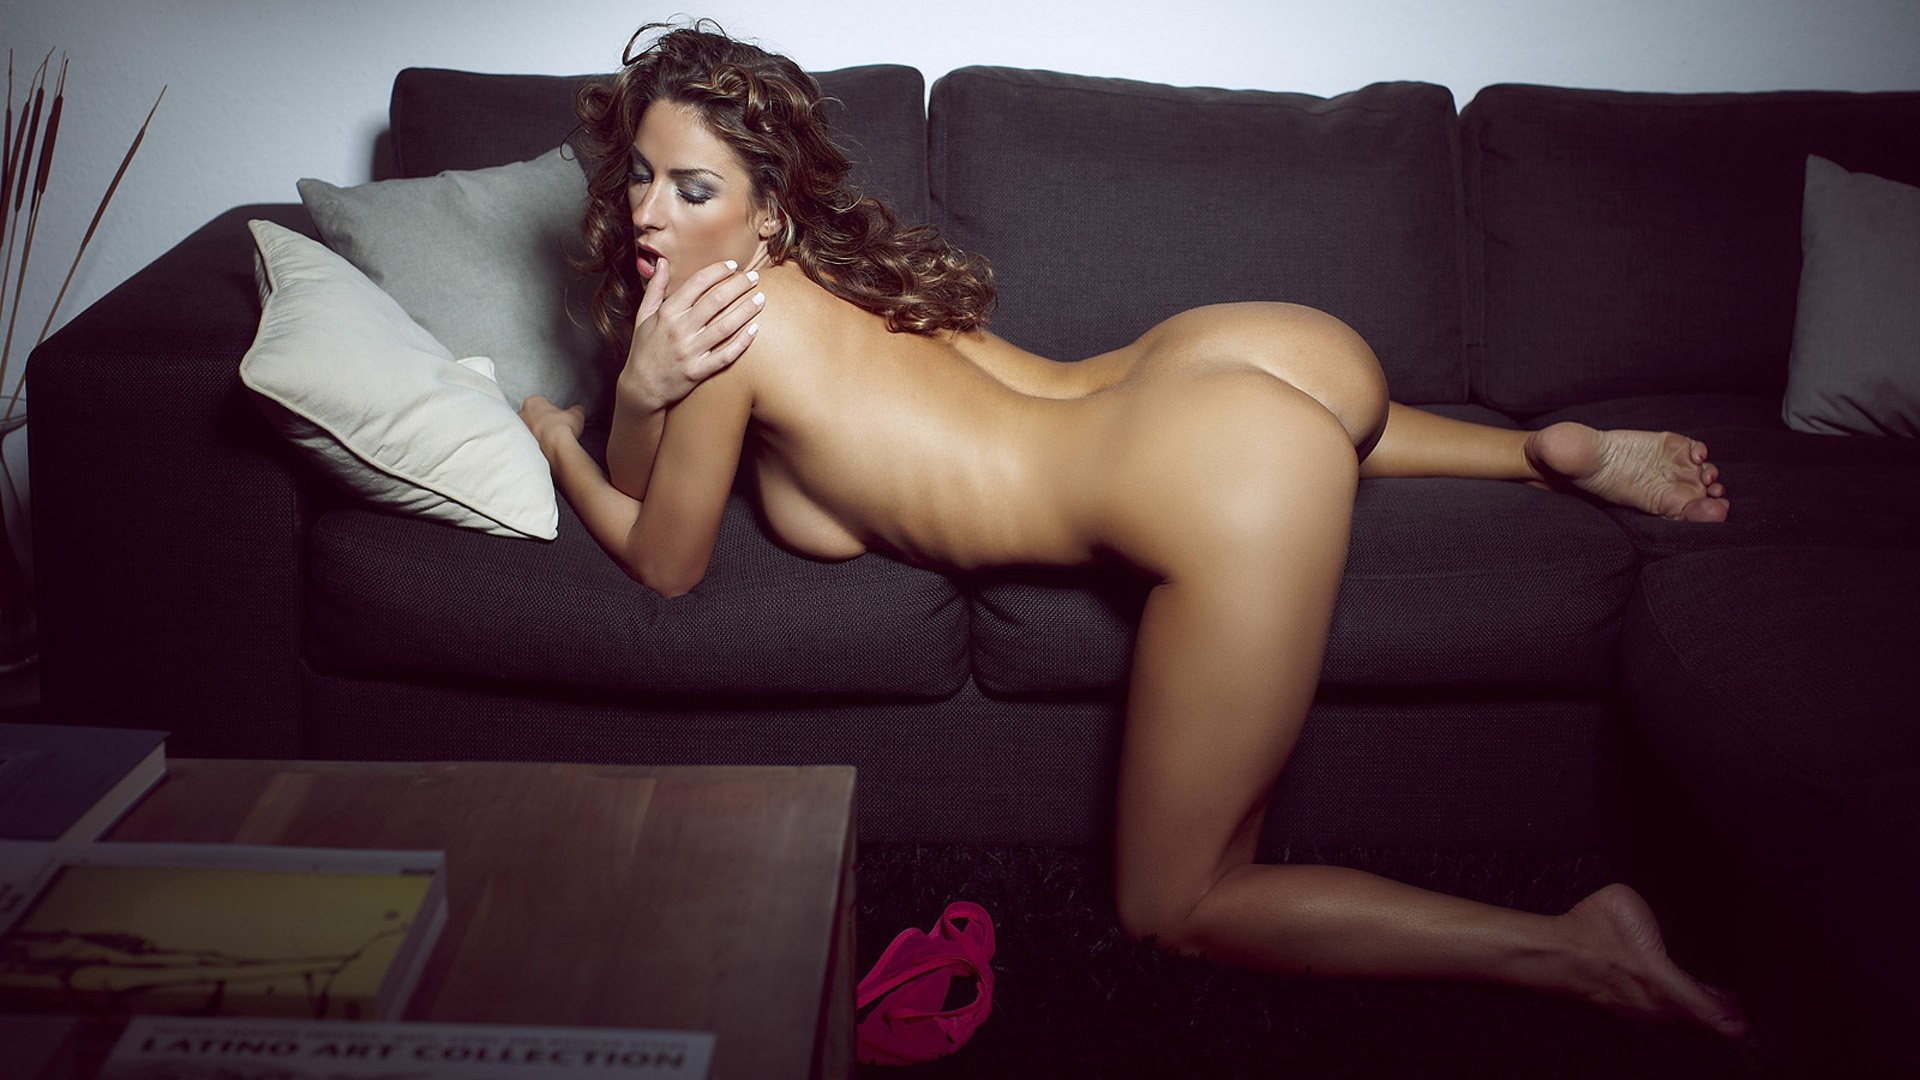 100 Pictures of Erotic Glamour Nudes